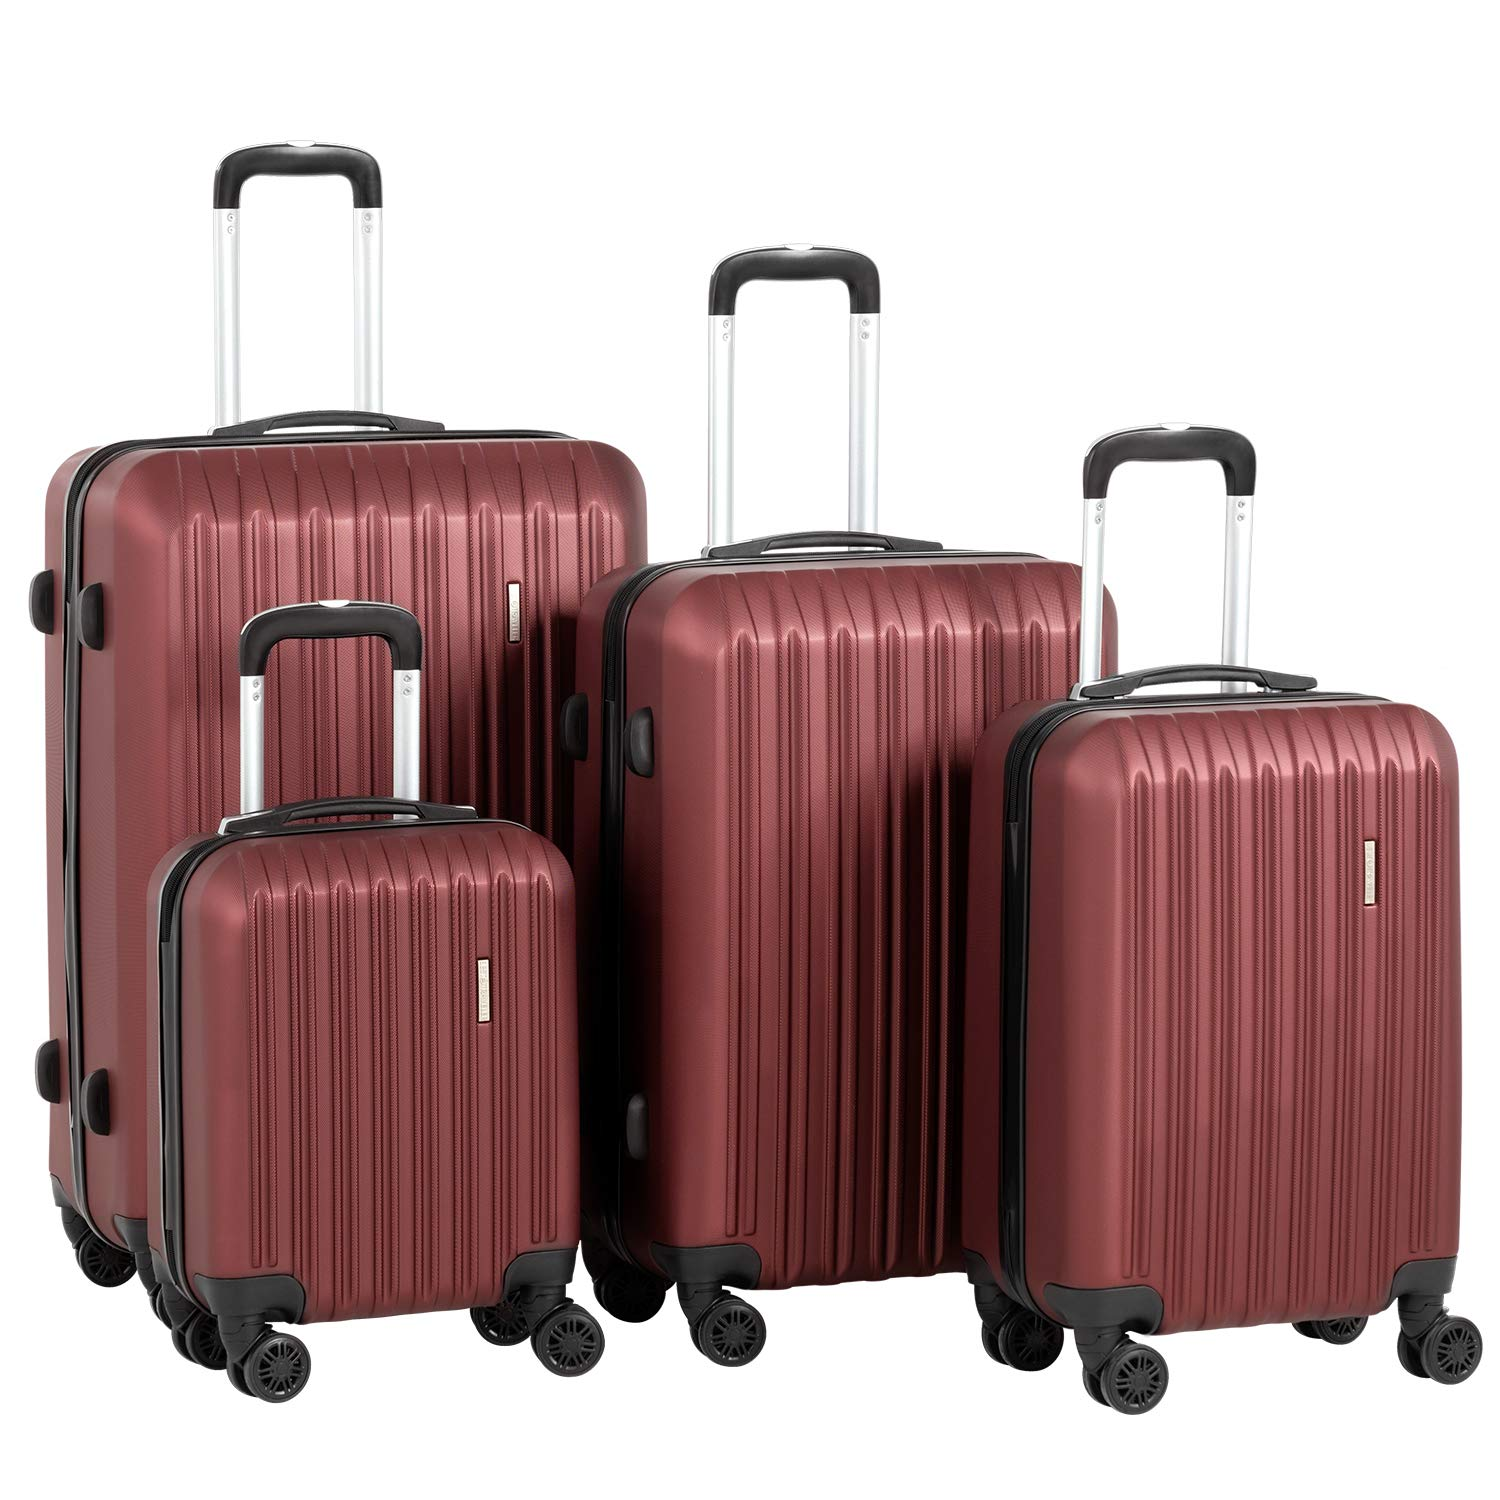 Murtisol 4 Pieces ABS Luggage Sets Hardside Spinner Lightweight Durable Spinner Suitcase 16'' 20'' 24'' 28'', 4PCS Wine Red by Murtisol